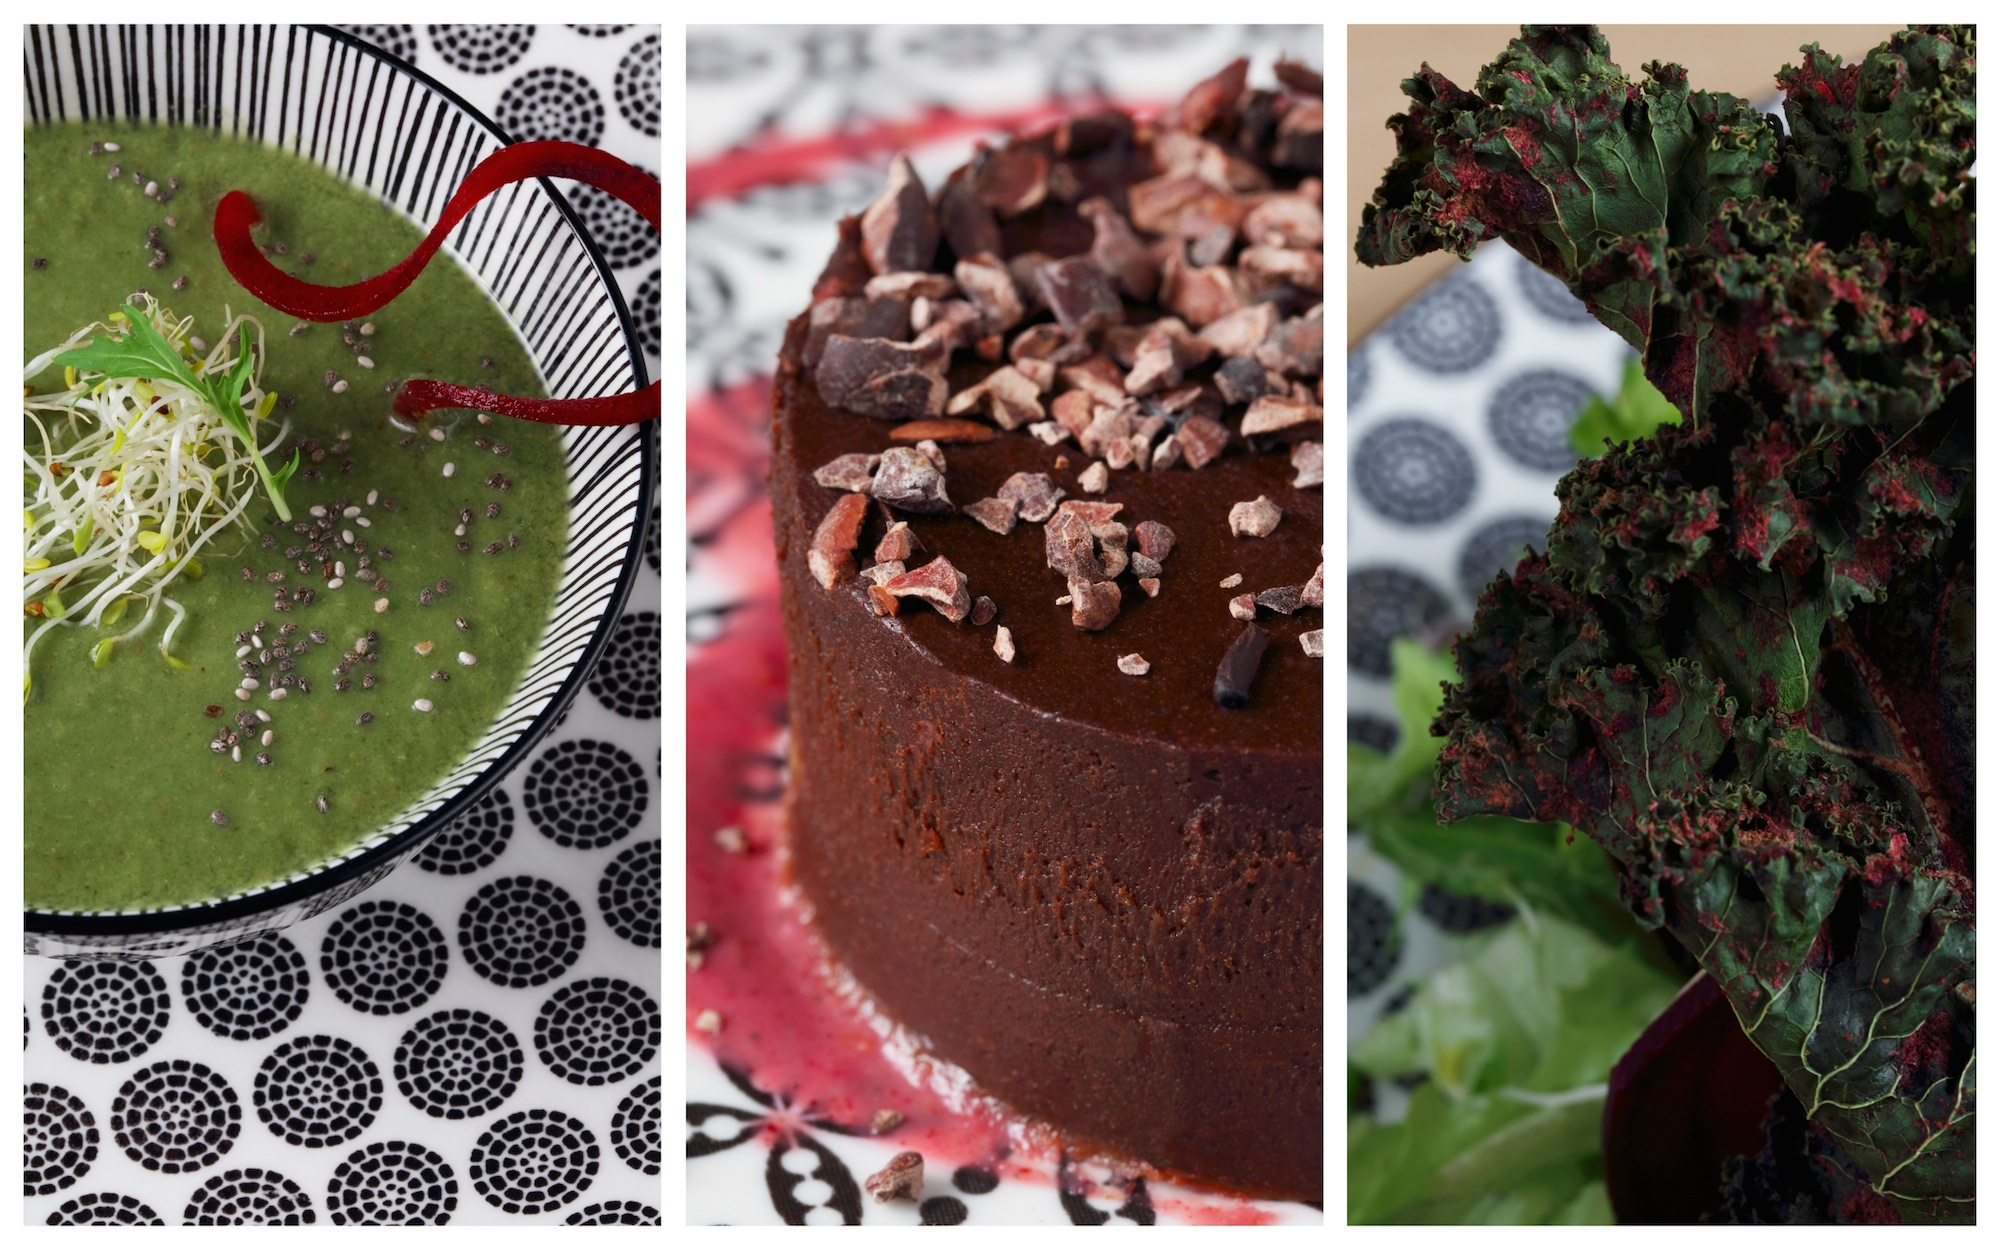 Veggie Magnifique round up of the top vegan spots in Paris for HiP Paris Blog like 5 Lorette for its green soups and chocolate cake.